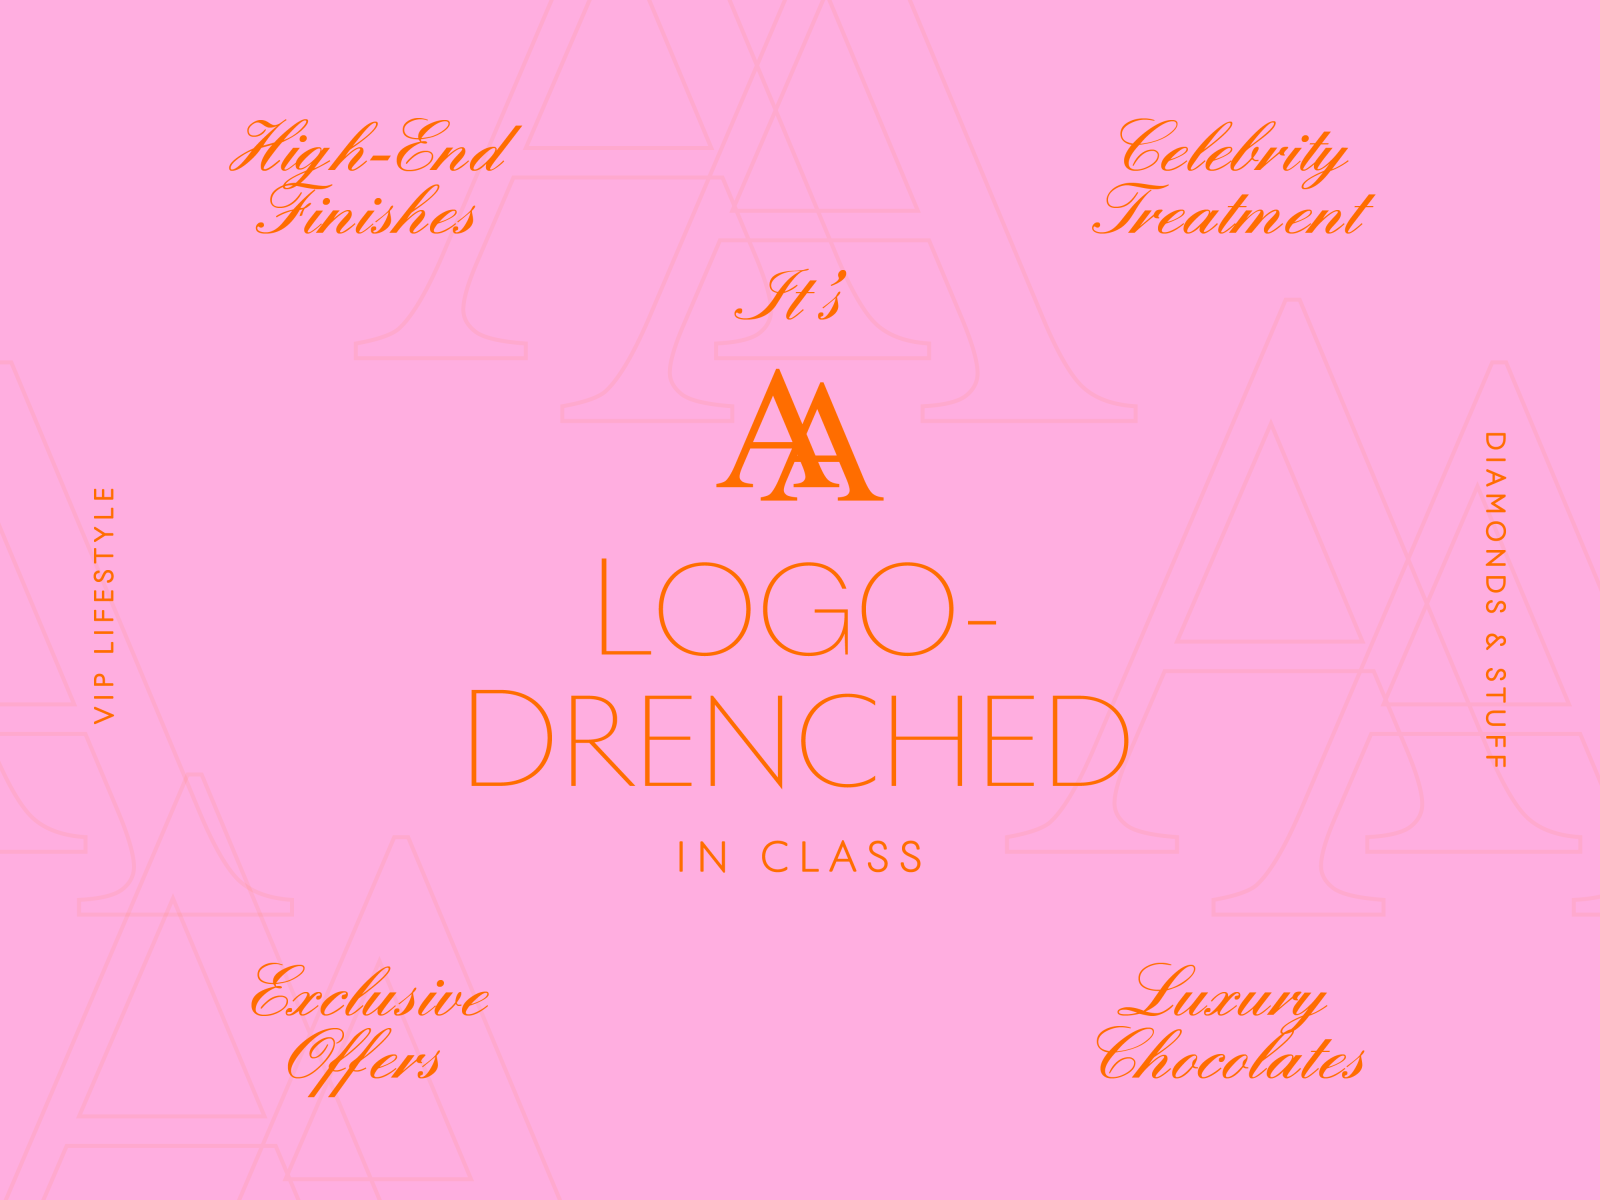 Overtime: A Logo Drenched in Class